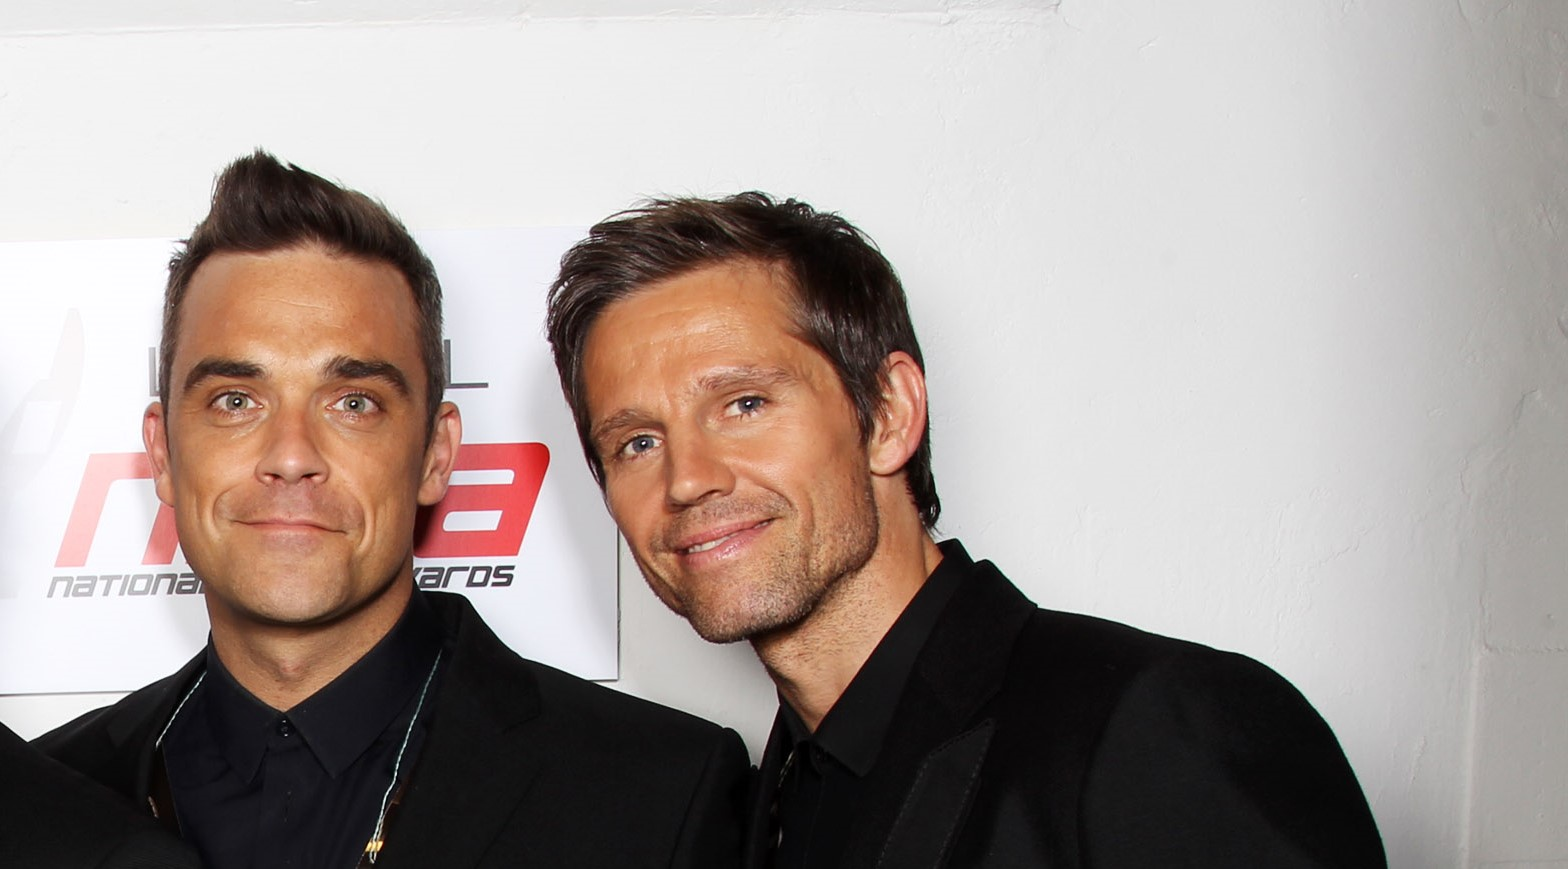 Take That's Robbie Williams and Jason Orange in 2011 (Credit: Getty Images)